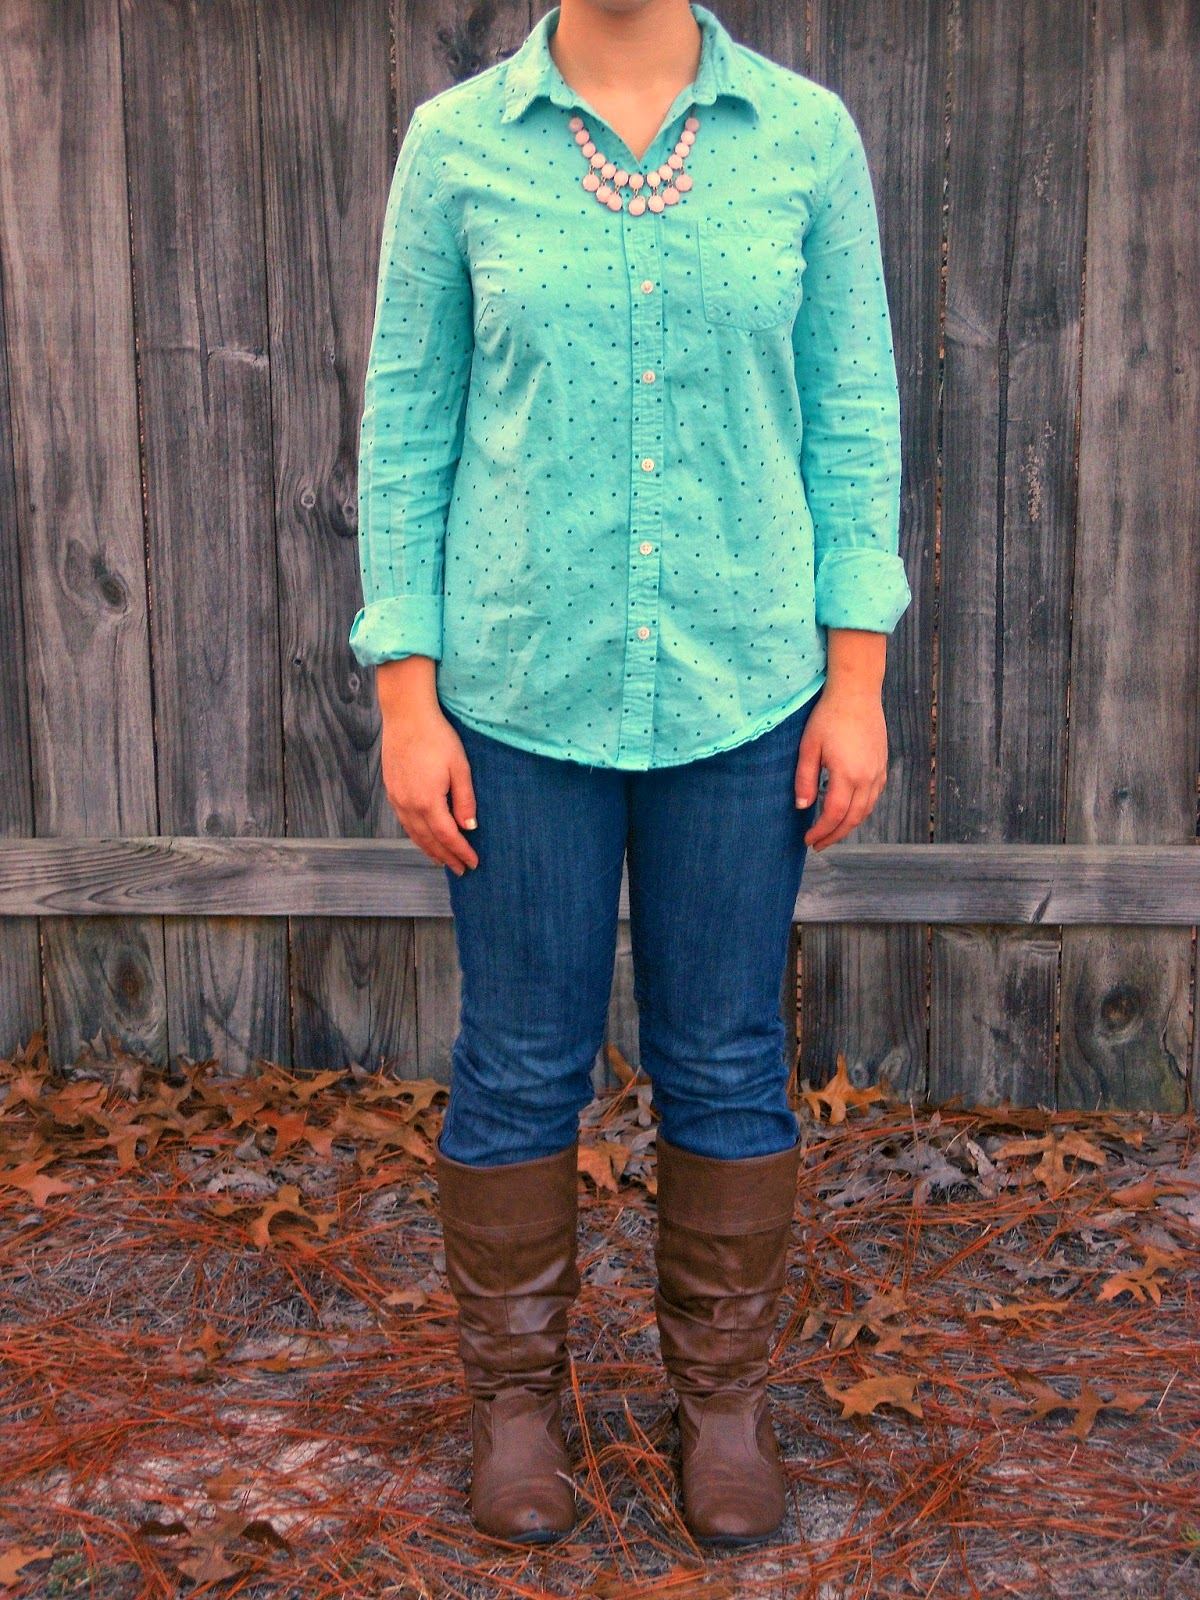 Turquoise and Light Pink. polka dot button down, pink necklace, jeans, brown boots